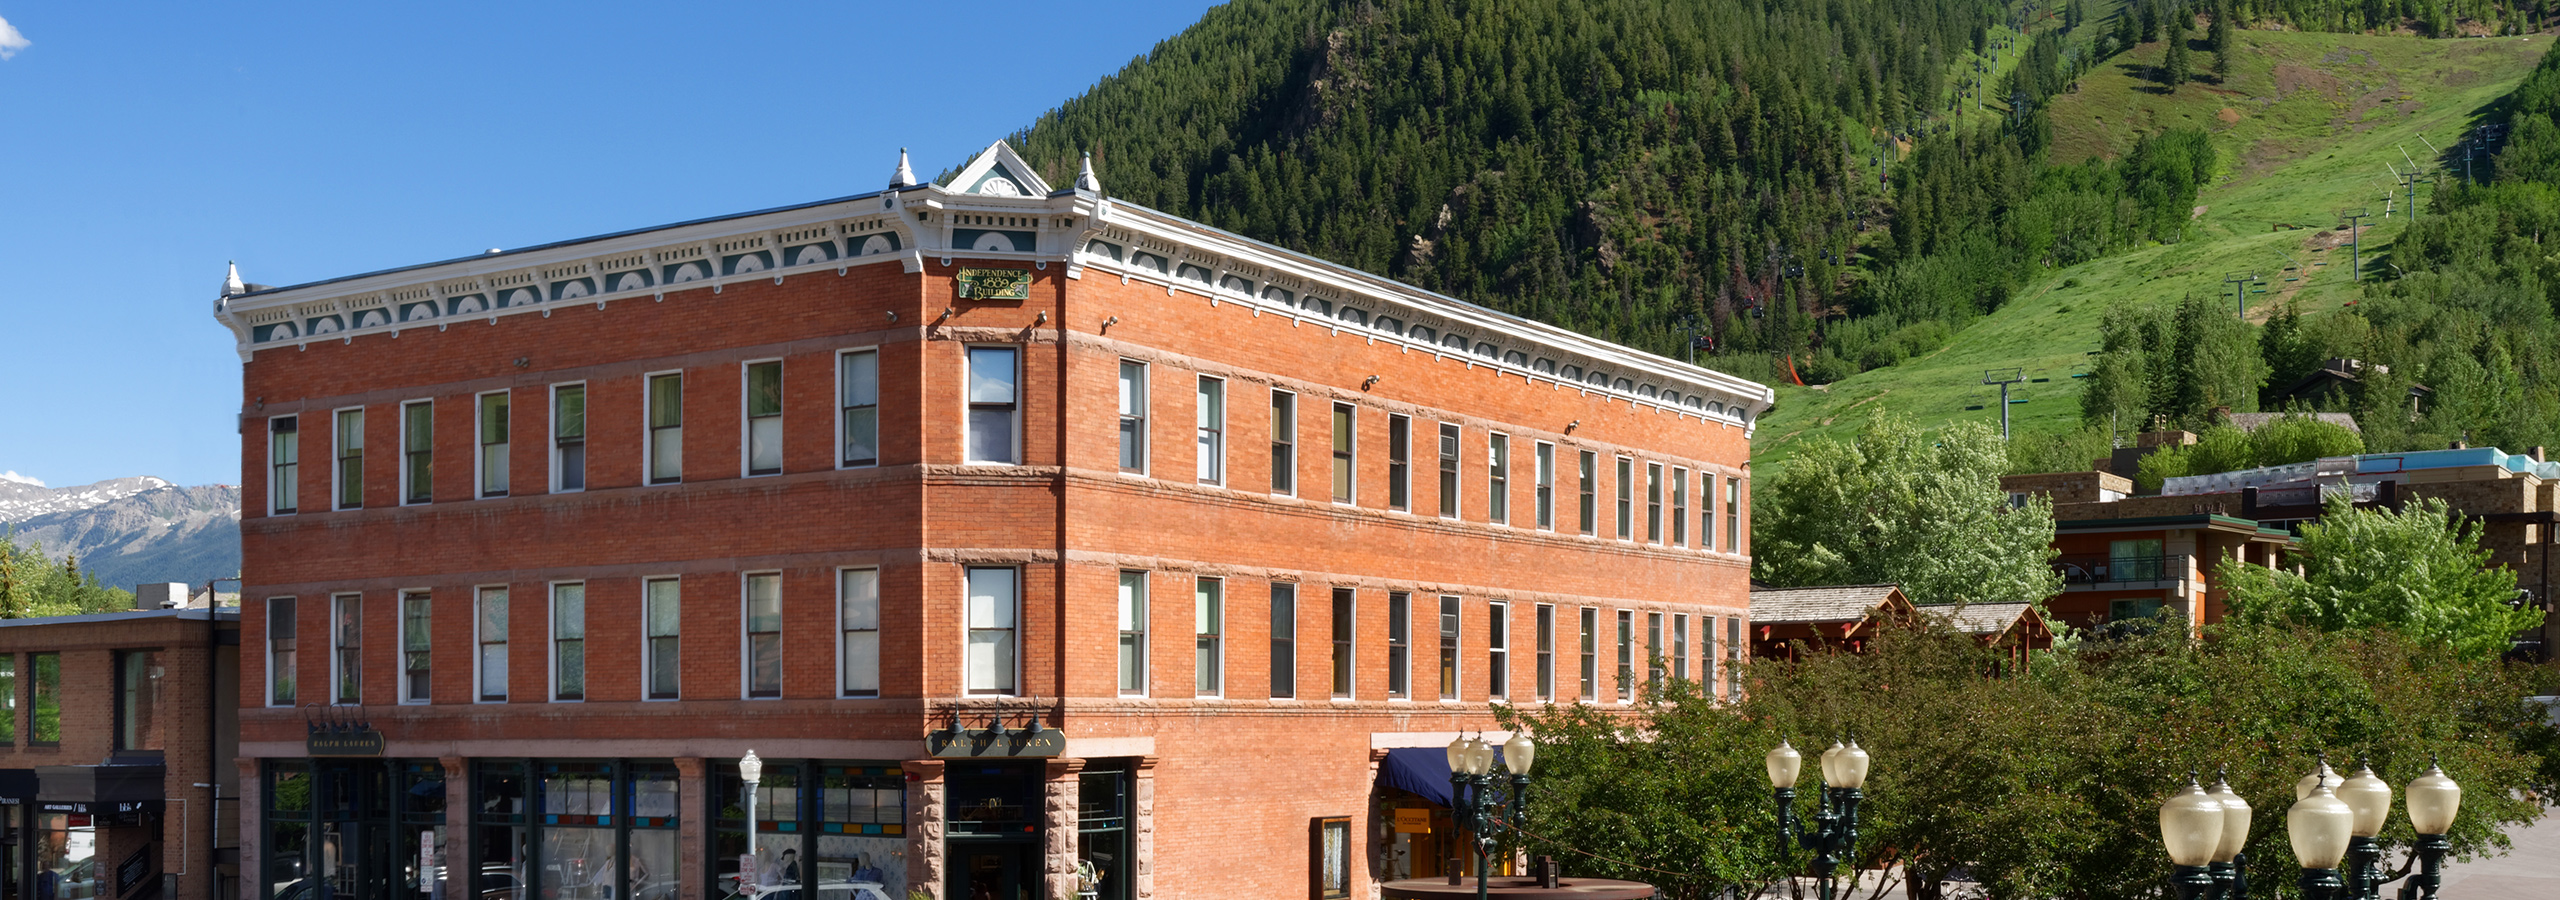 Independence Square Hotel in Downtown Aspen